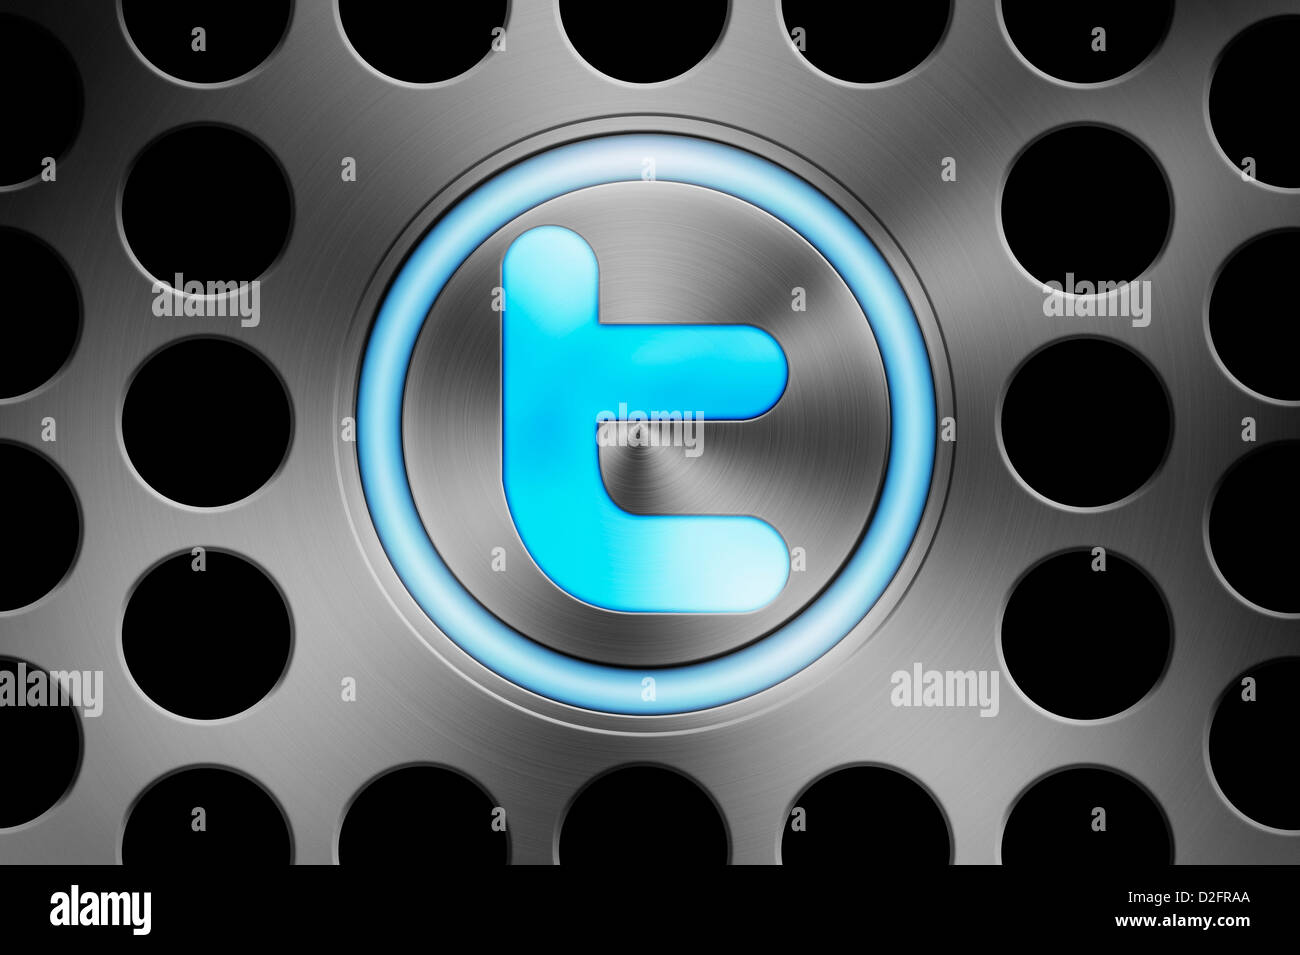 Blue glowing TWITTER icon button on a computer background - Stock Image